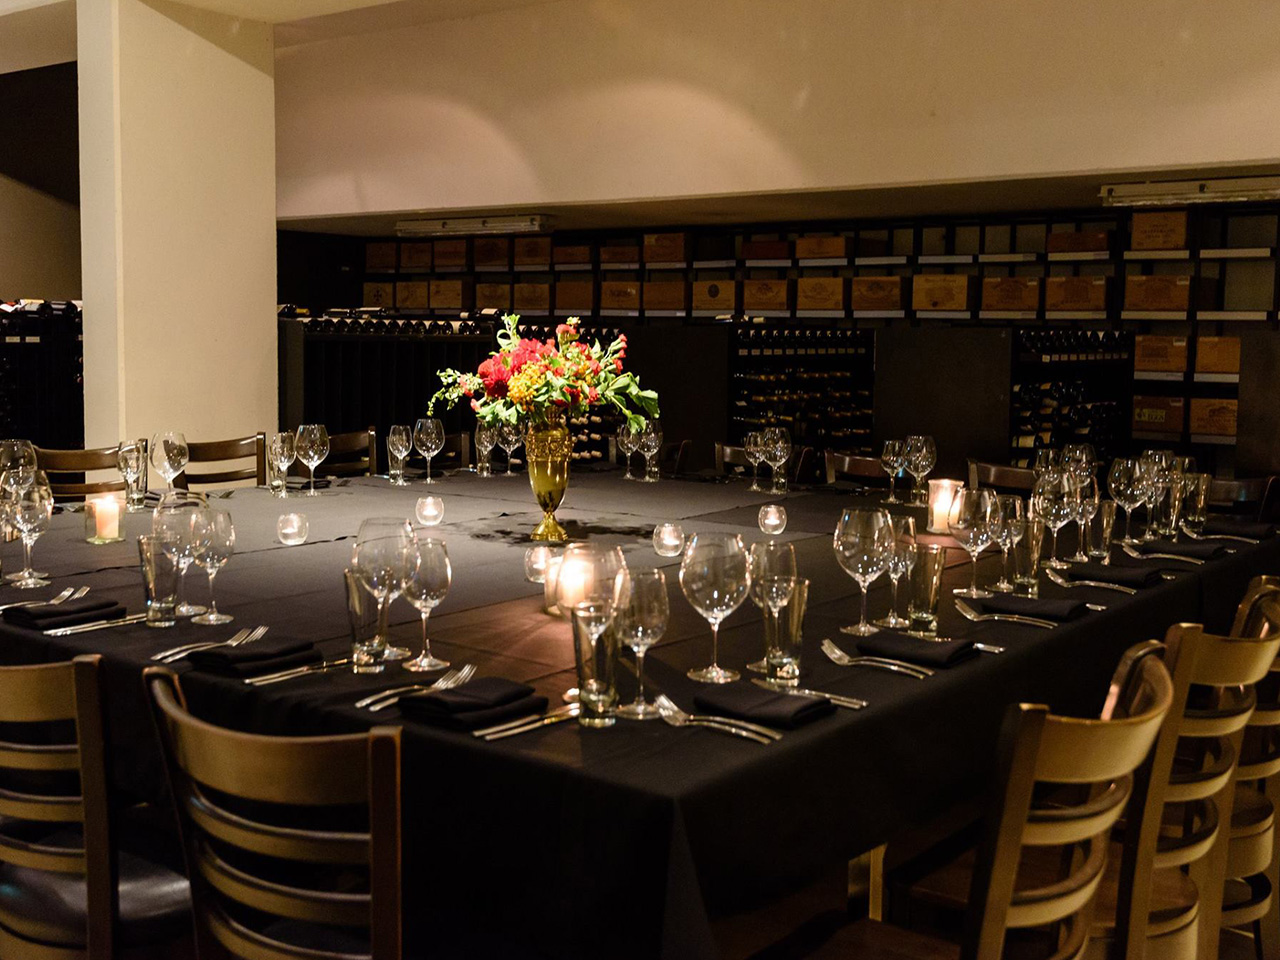 Chairs And A Square Table With Flower Centerpiece And Wine Glasses